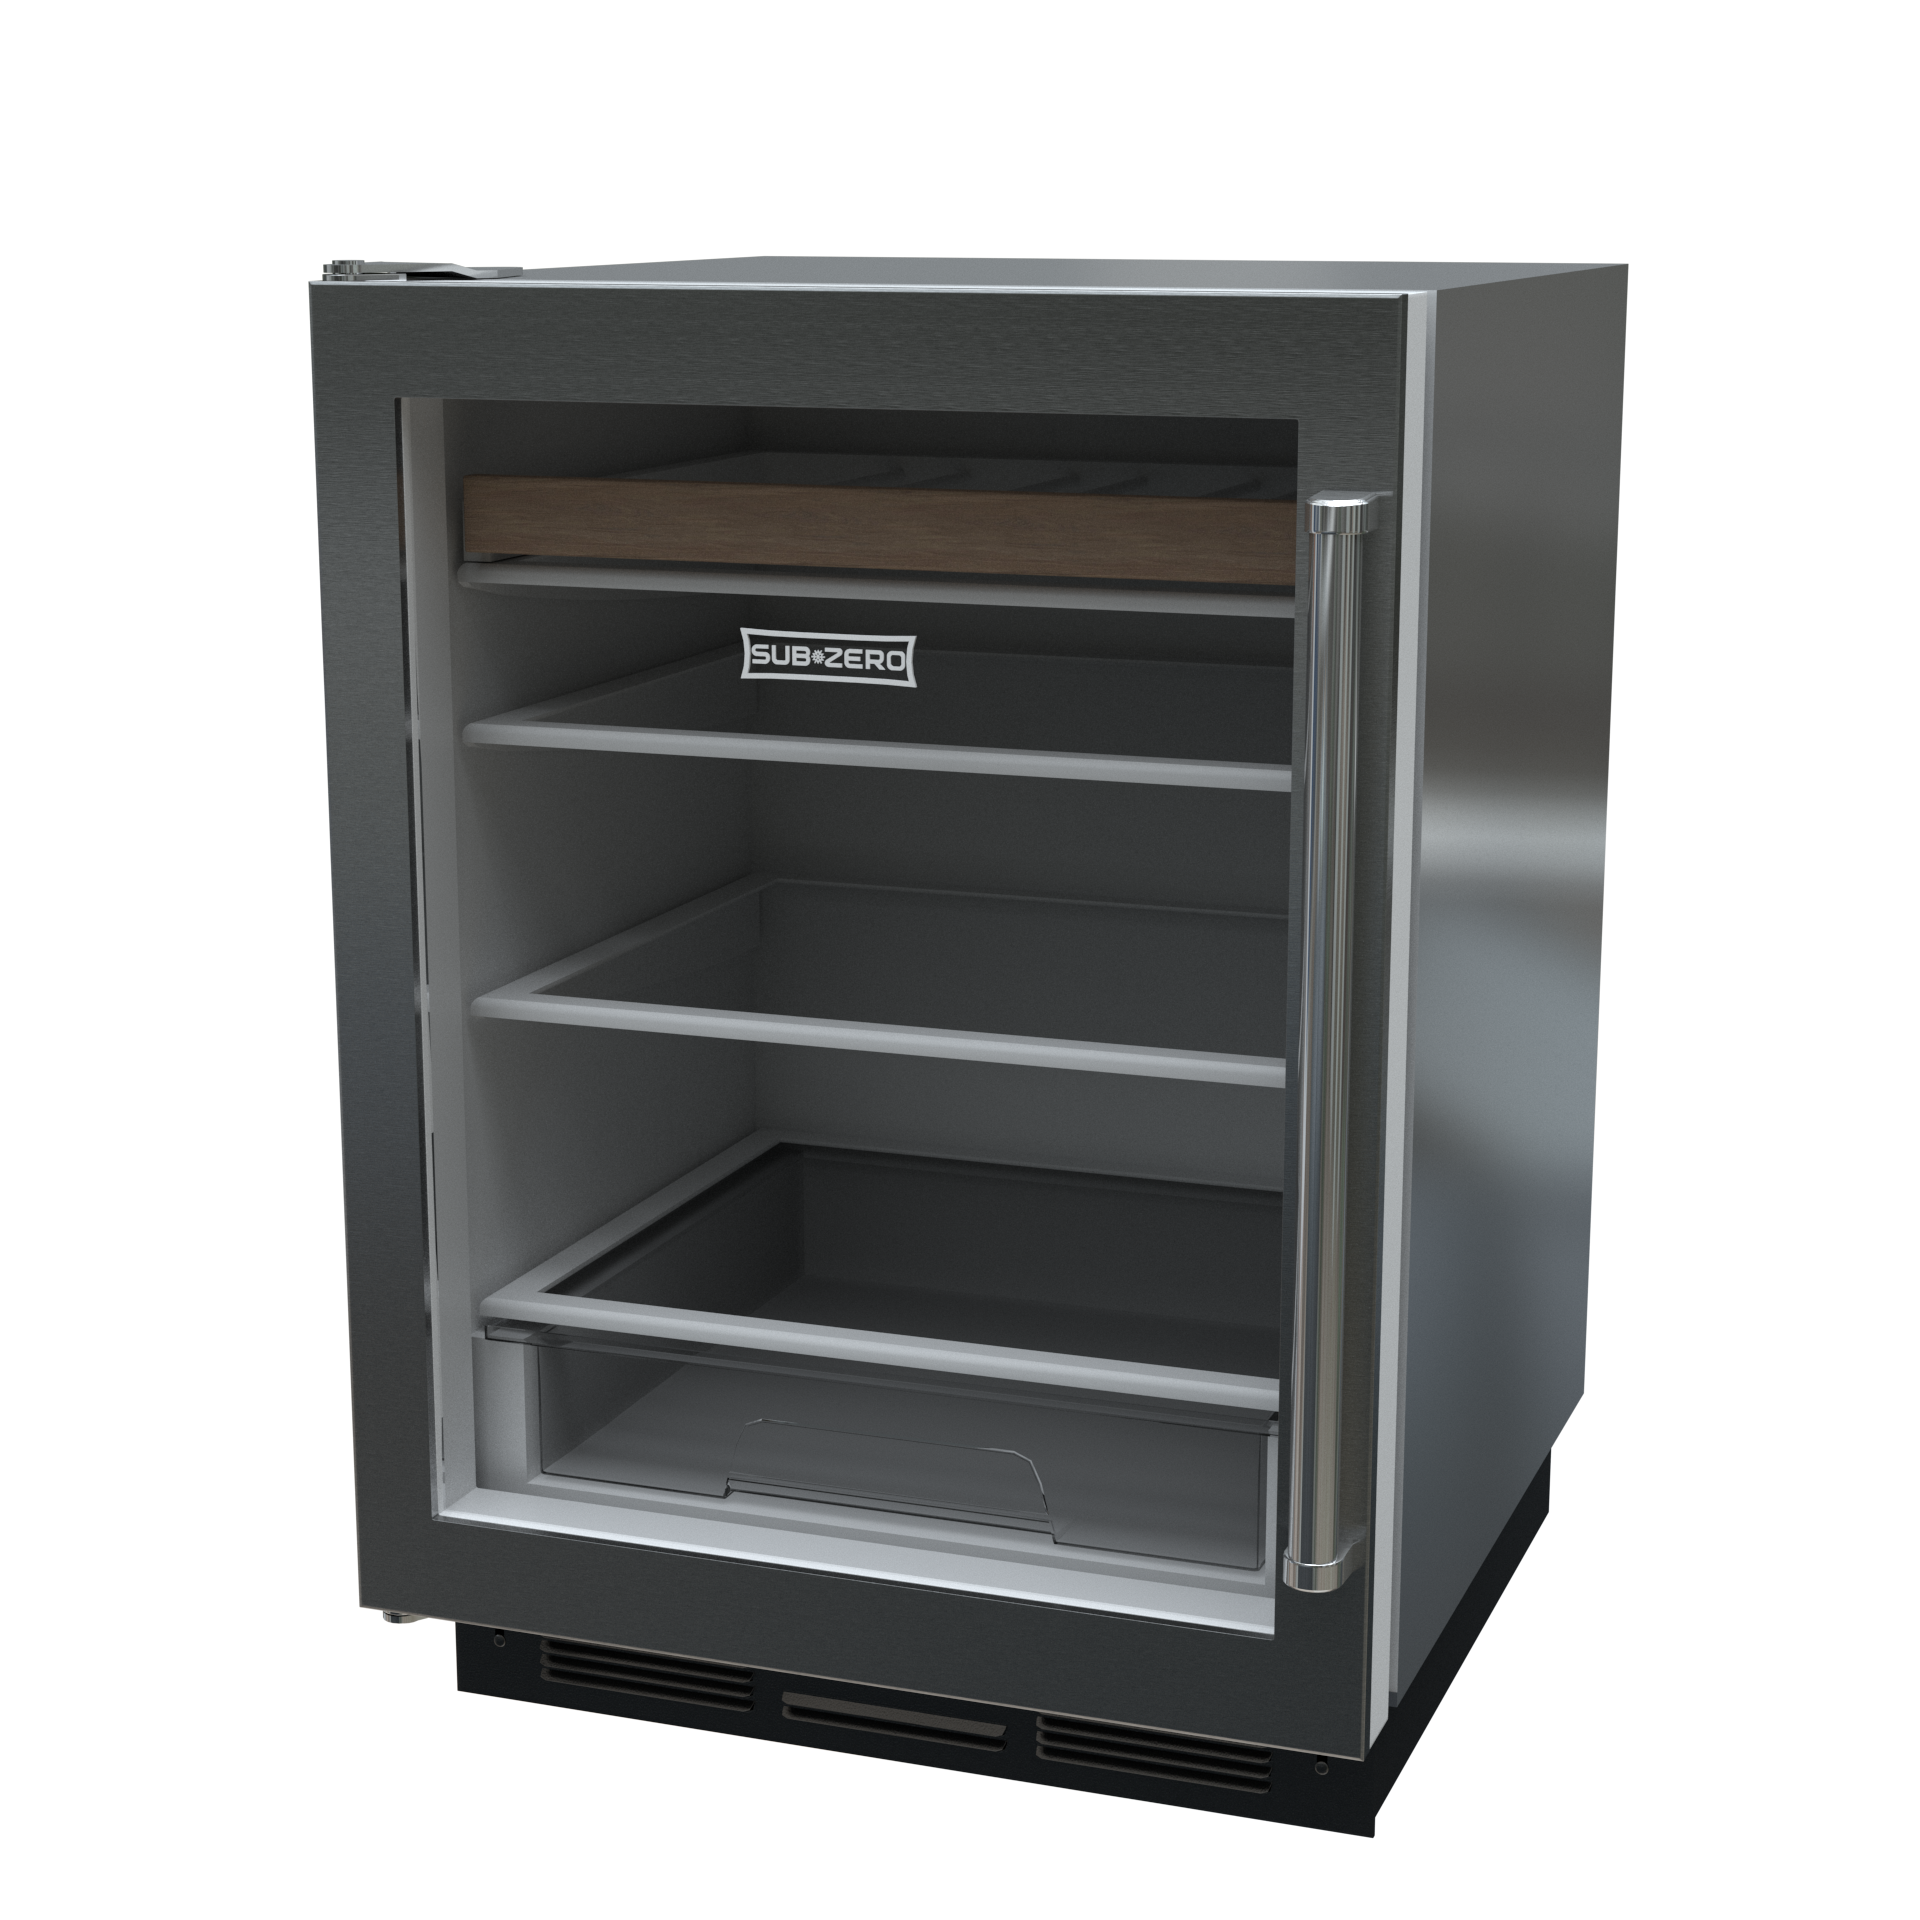 Undercounter Refrigerator AI 01 Preview.png